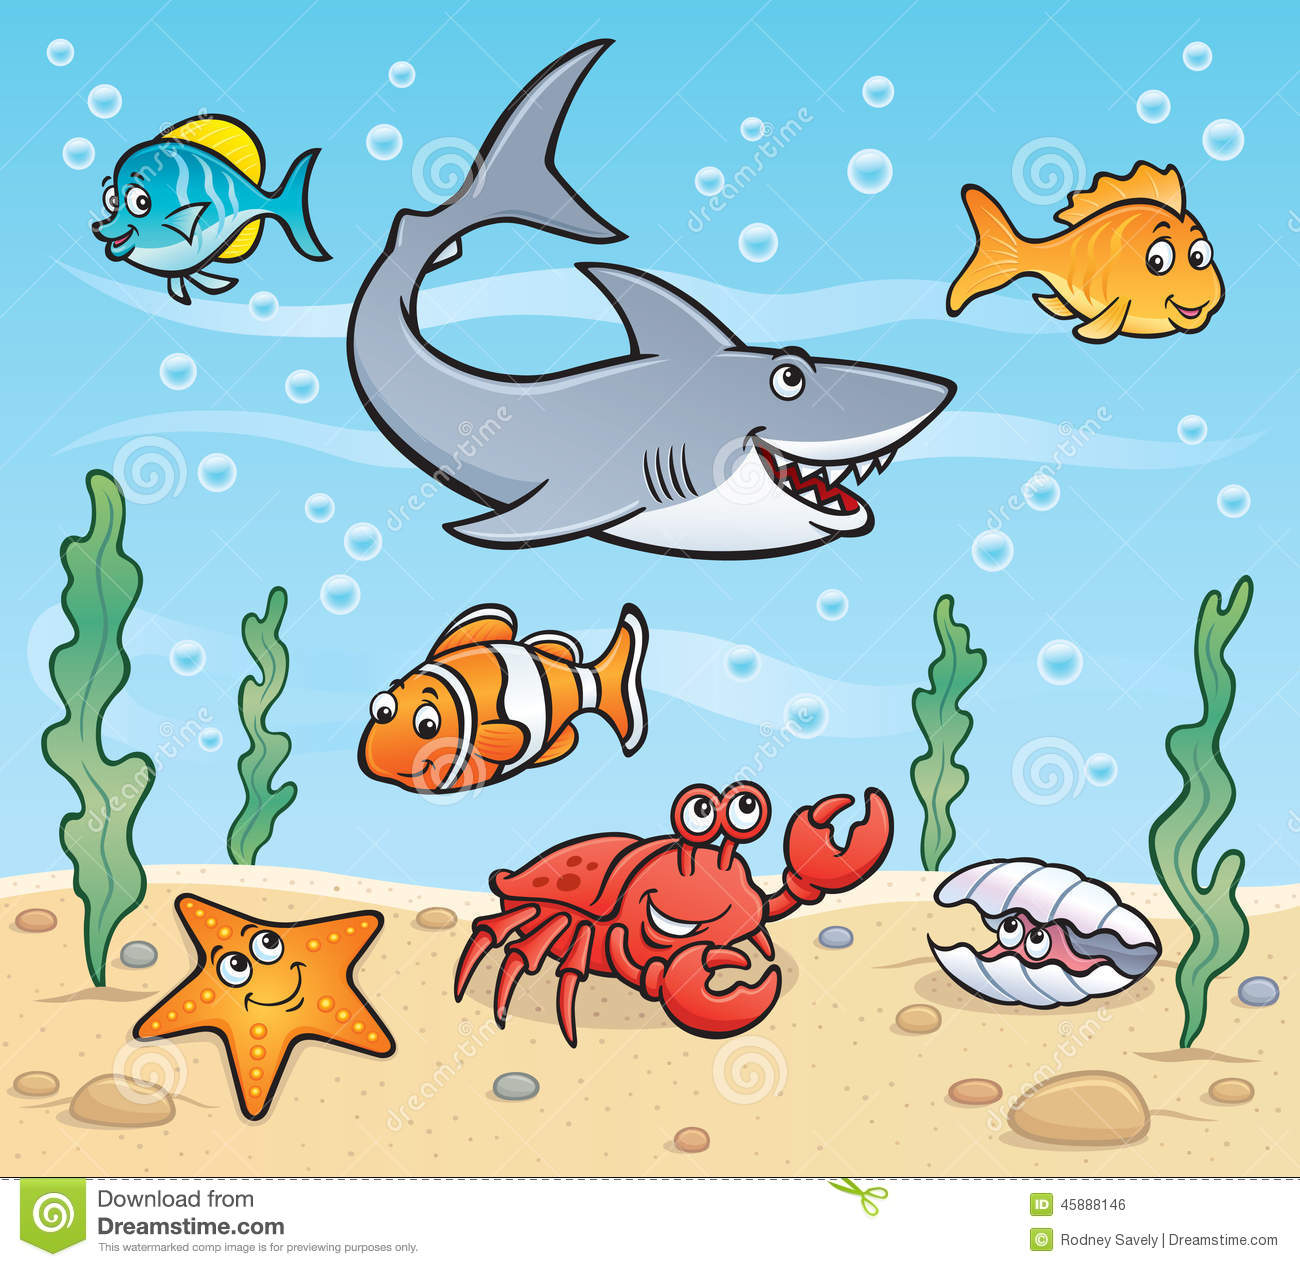 Shark Party Invitations with adorable invitations ideas